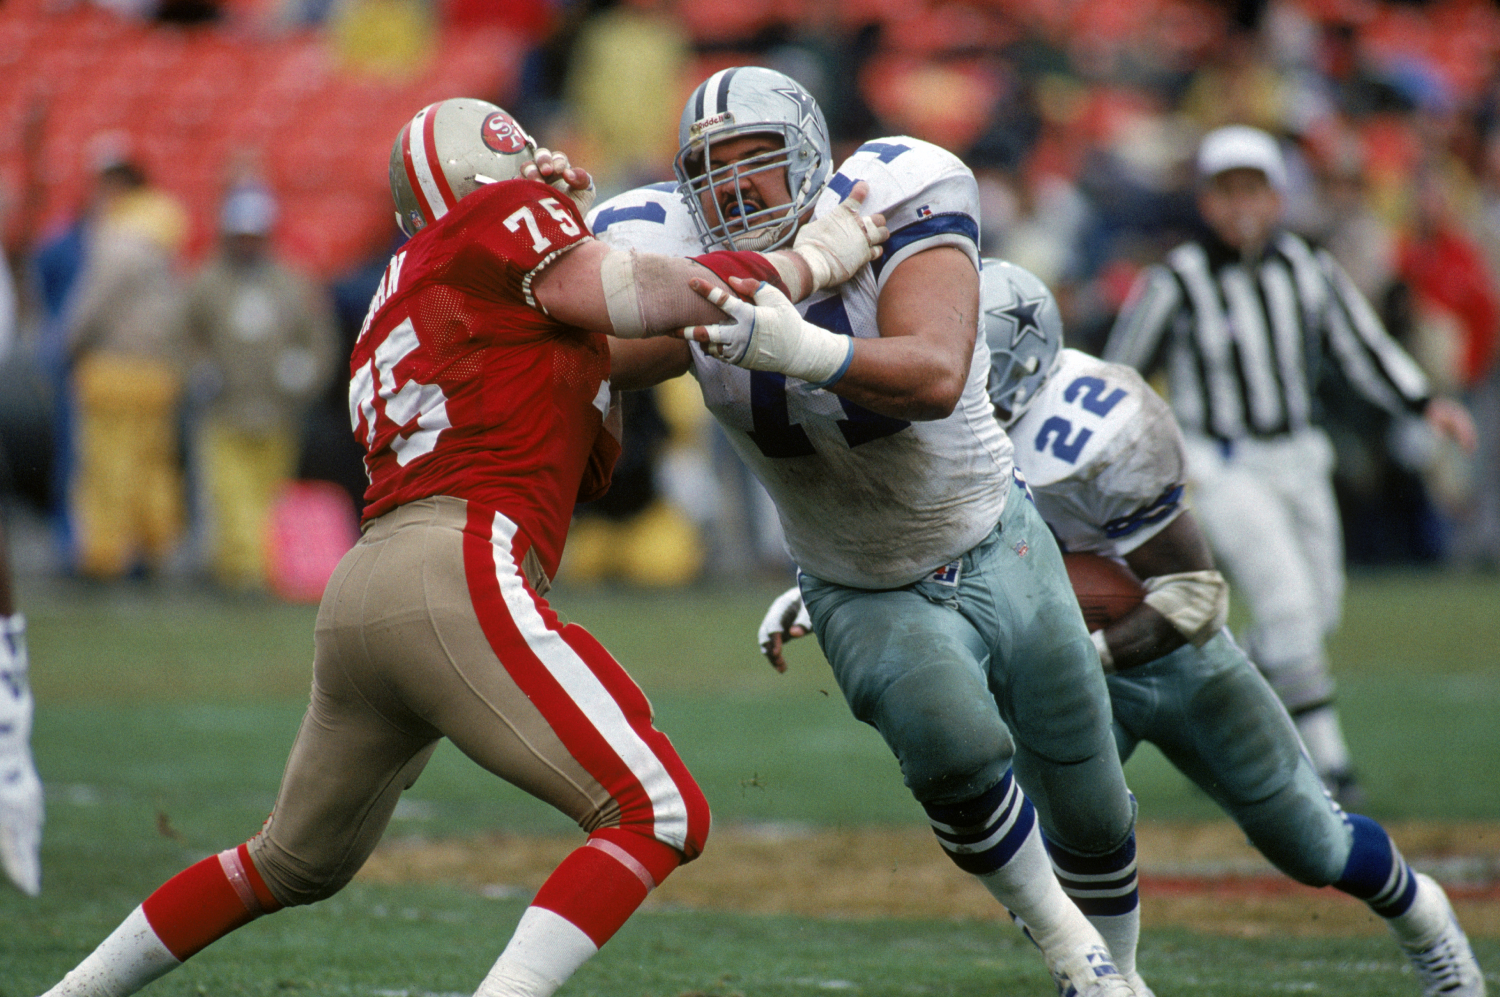 Mark Tuinei helped lead the Dallas Cowboys' o-line when they won three Super Bowls in four years. He tragically died soon after his career.